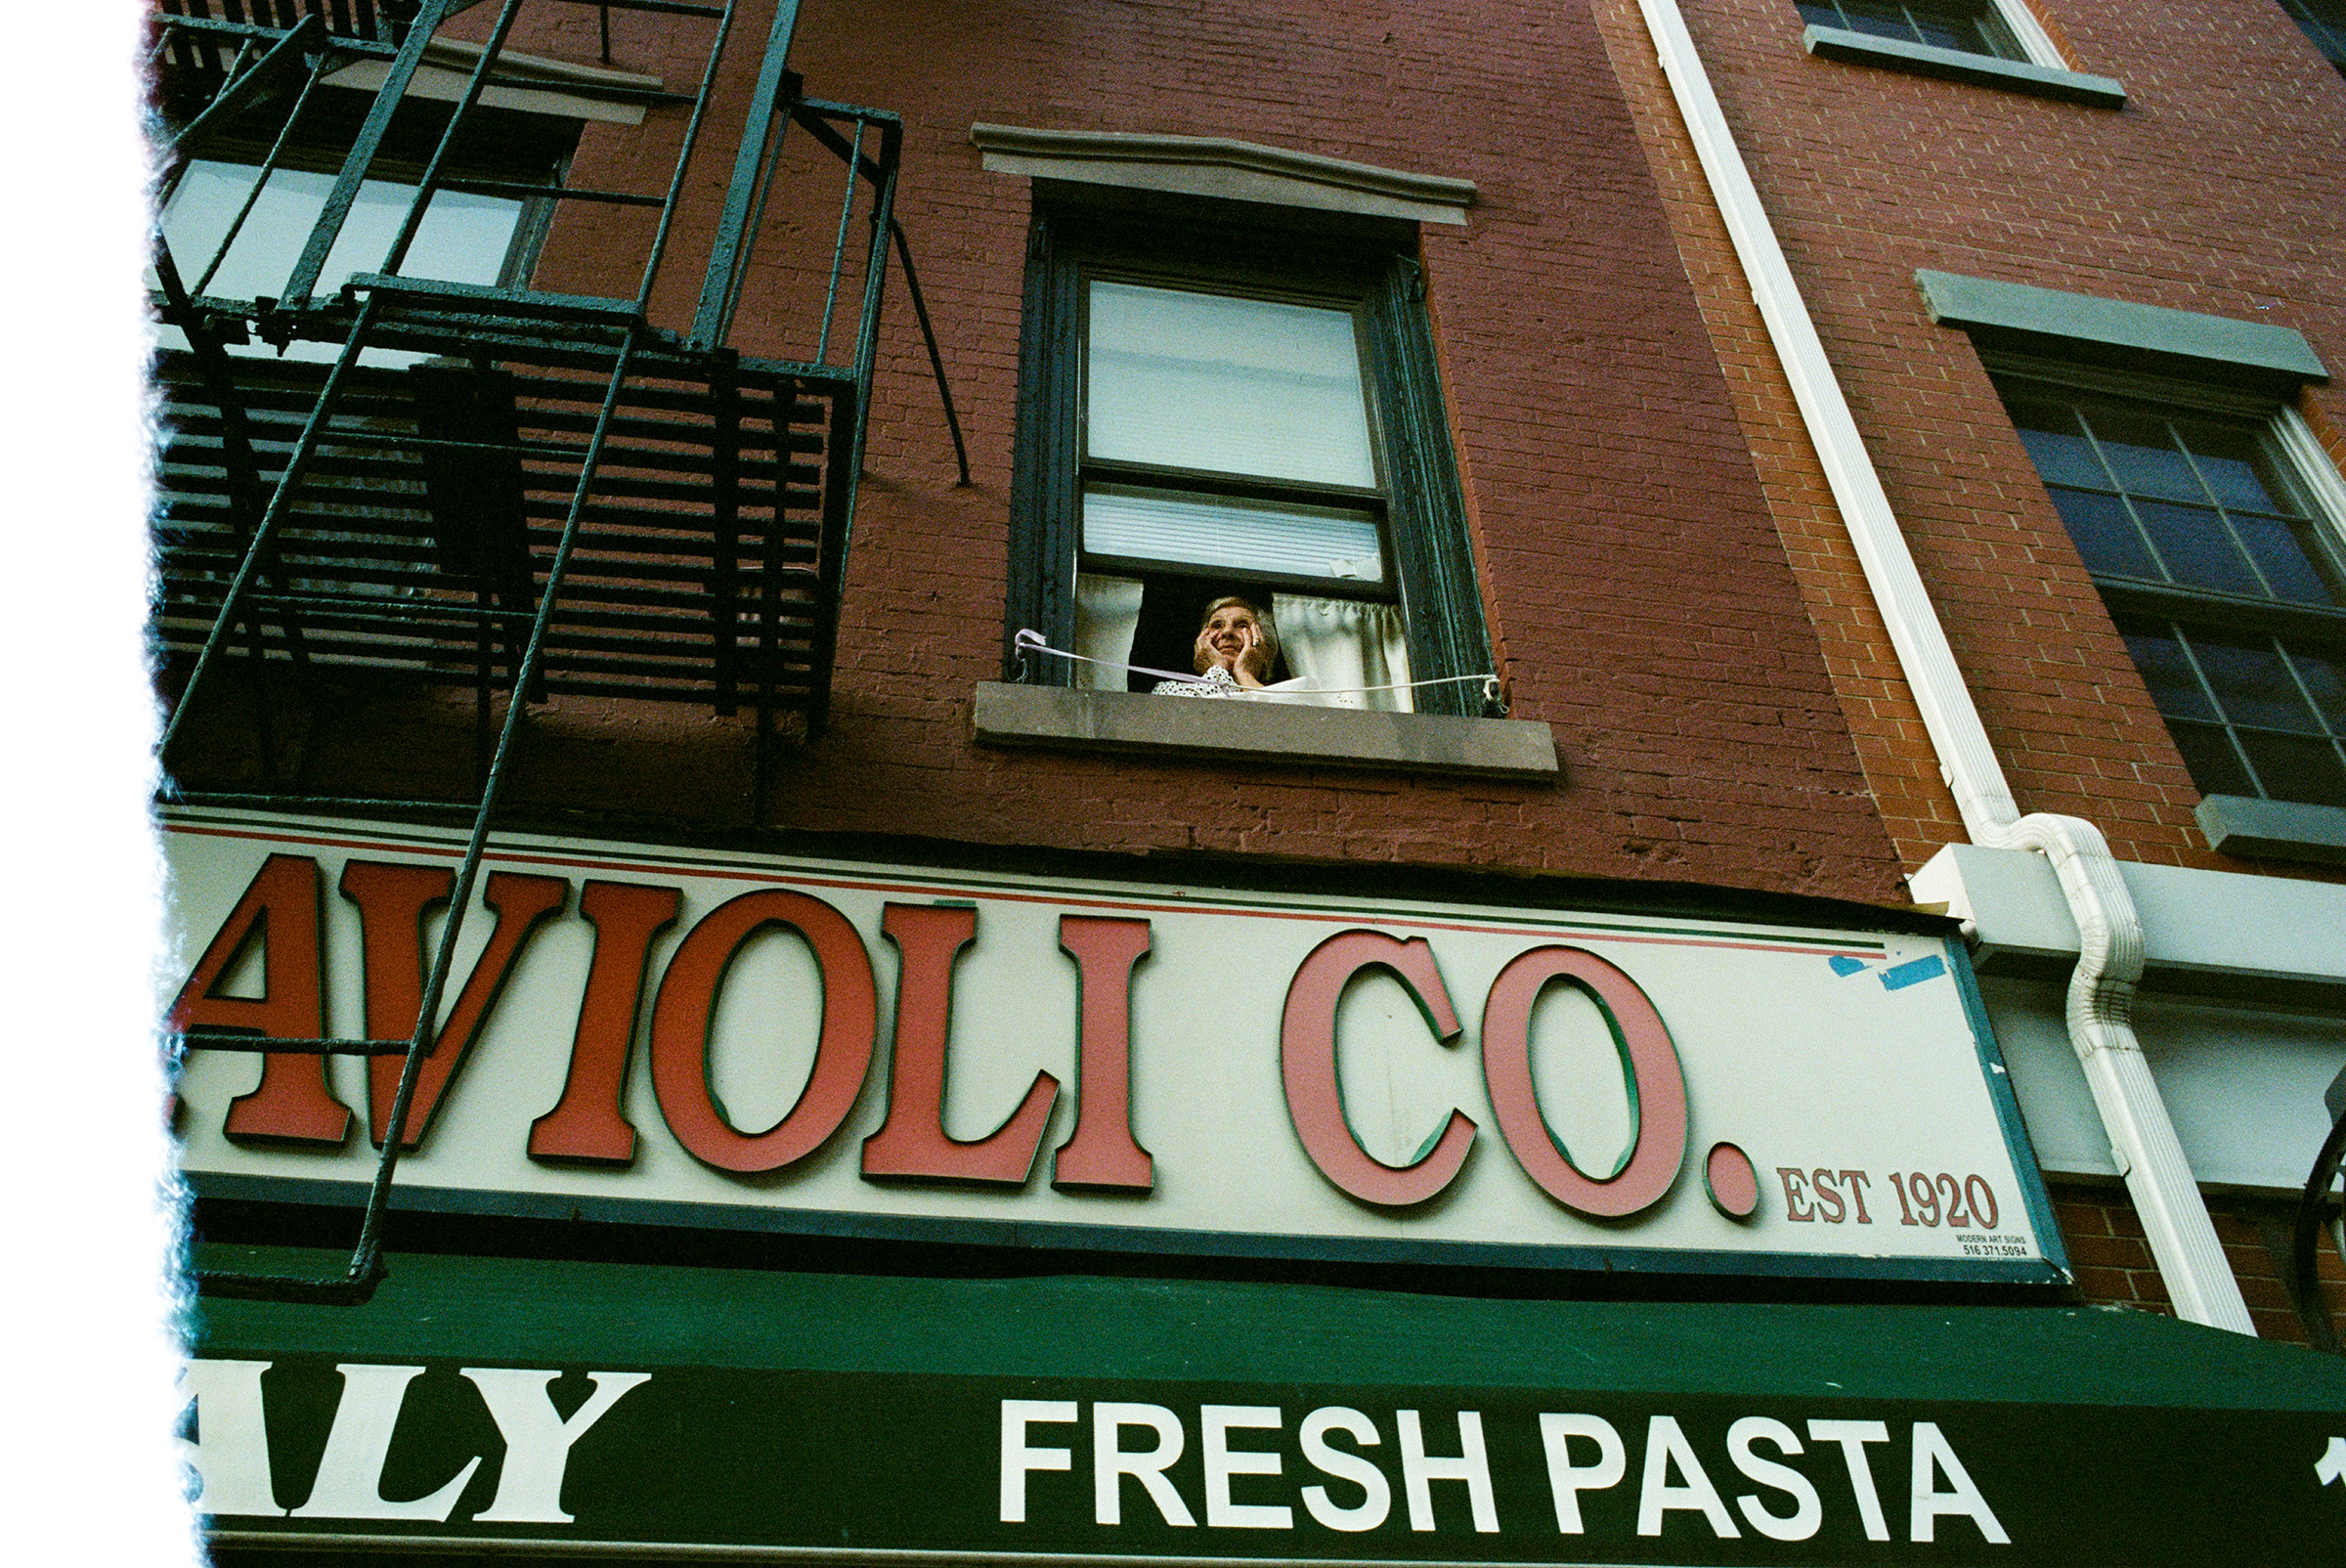 A woman in Little Italy looks out over the intersection of Mulberry and Grand Streets during the pandemic, May 14, 2020.